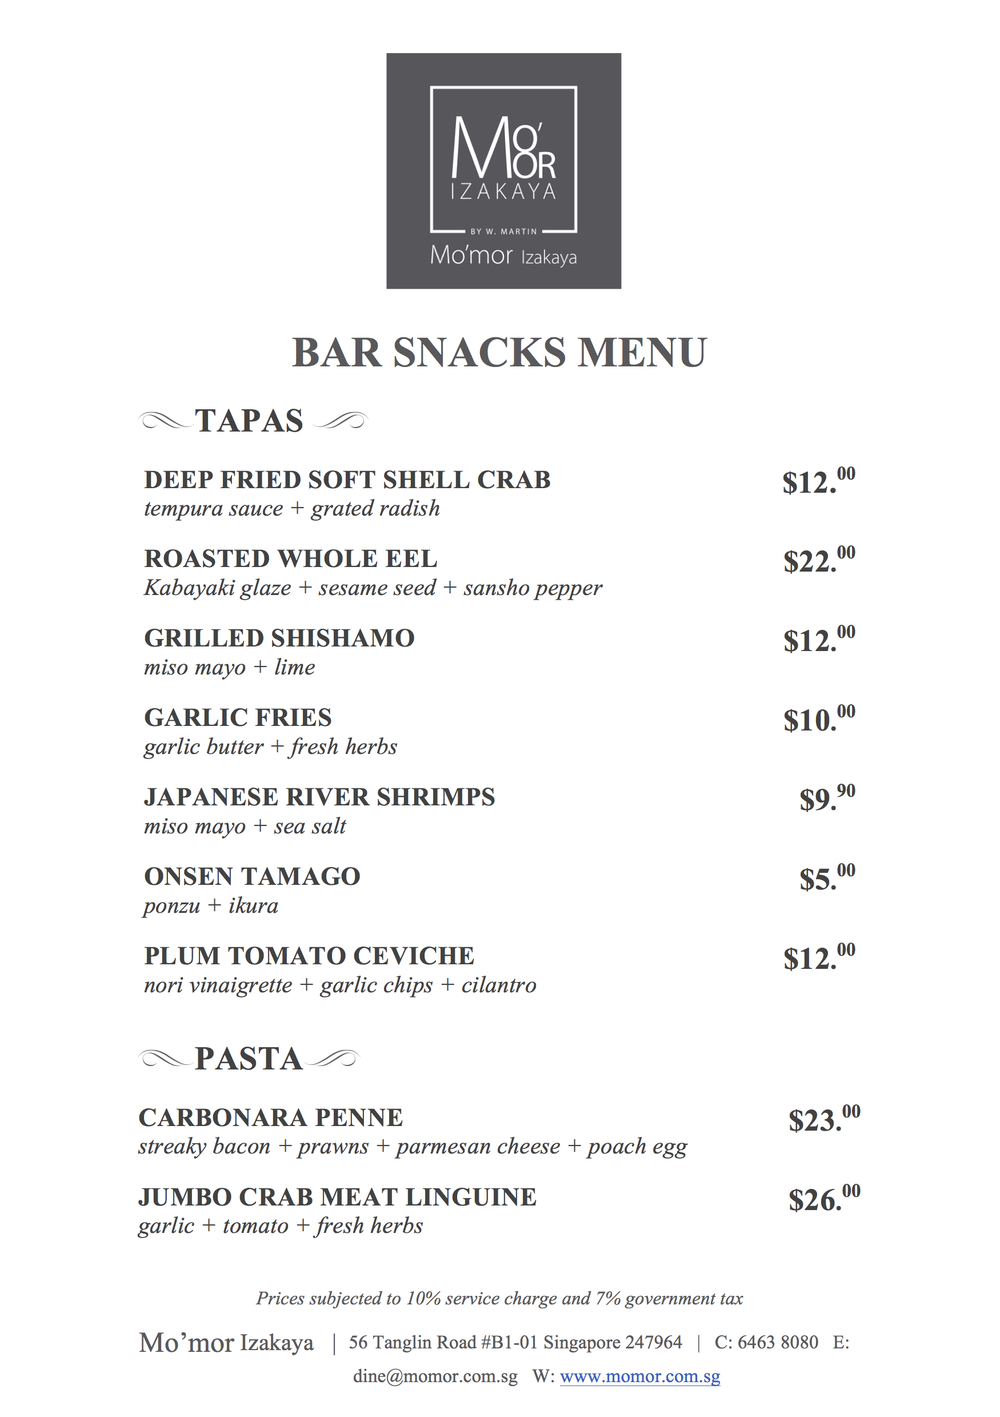 Mo'mor Bar Snacks Menu (Updated 28th April'16). Available on Friday & Saturday, from 9:30pm - 10:30pm Please call us at 6463 8080 or email us dine@momor.com.sg to make reservation.  **Note - Parking space is limited. Alternative parking at Tanglin Post Office basement or Tanglin Mall Nearest Bus Stop                                              Nearest MRT Station Bus 7, 77, 105, 106, 123, 174 and NR8               Orchard MRT Station (NS22) Walking 2 mins from bus stop B09149            Walking 15mins from Exit E to Mo'mor